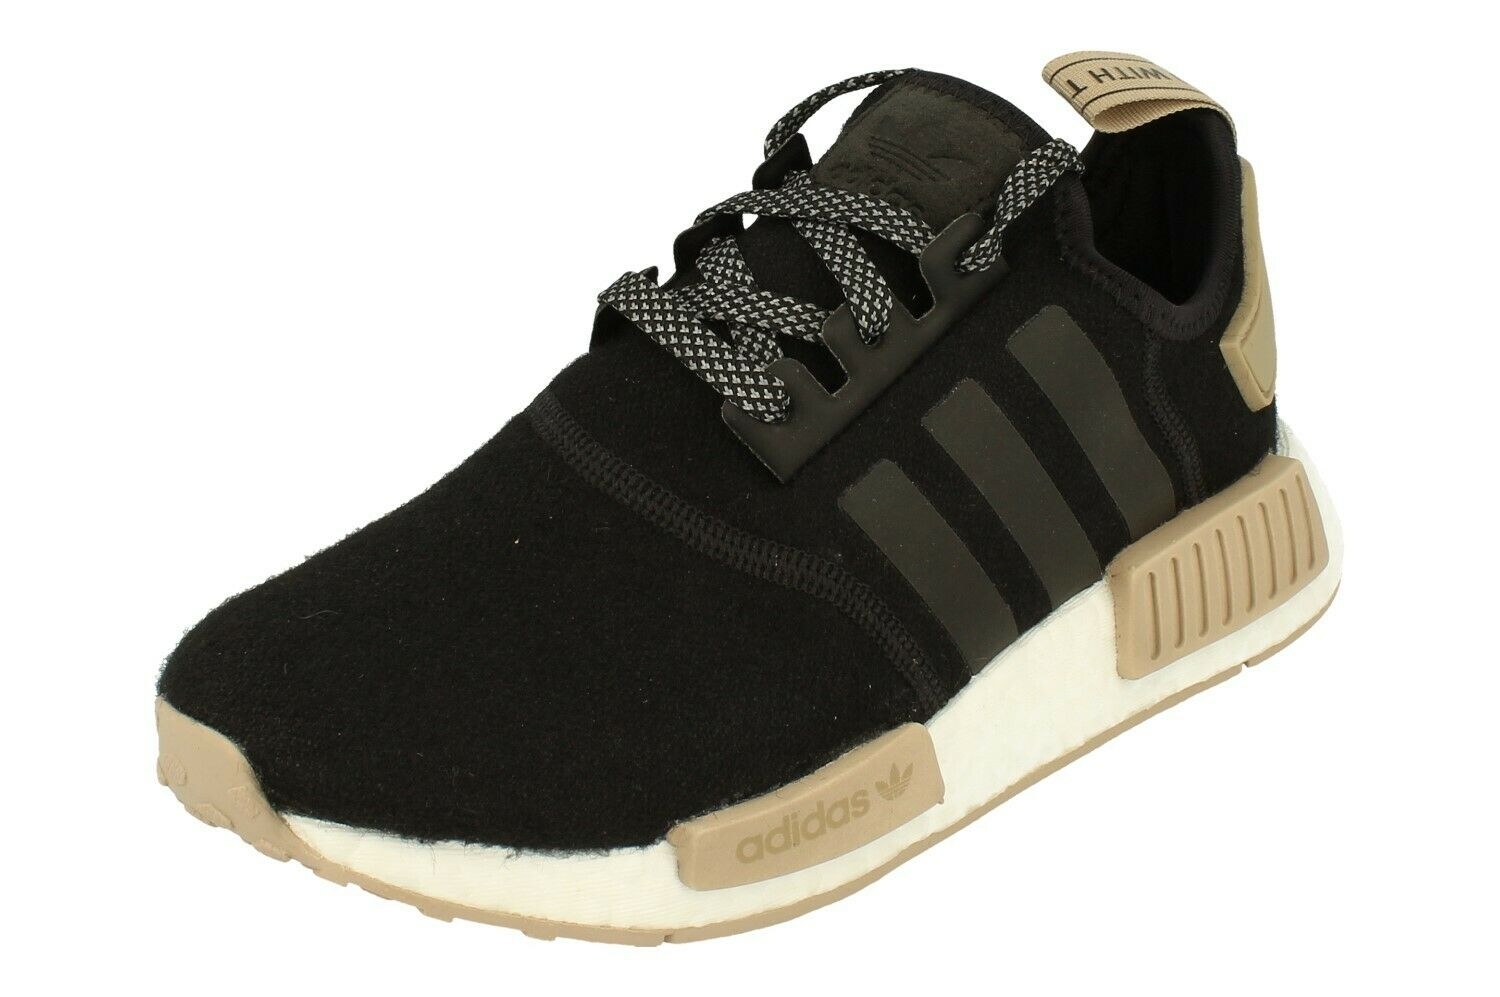 Adidas Originals Nmd_R1 Mens Trainers Sneakers shoes CQ0760